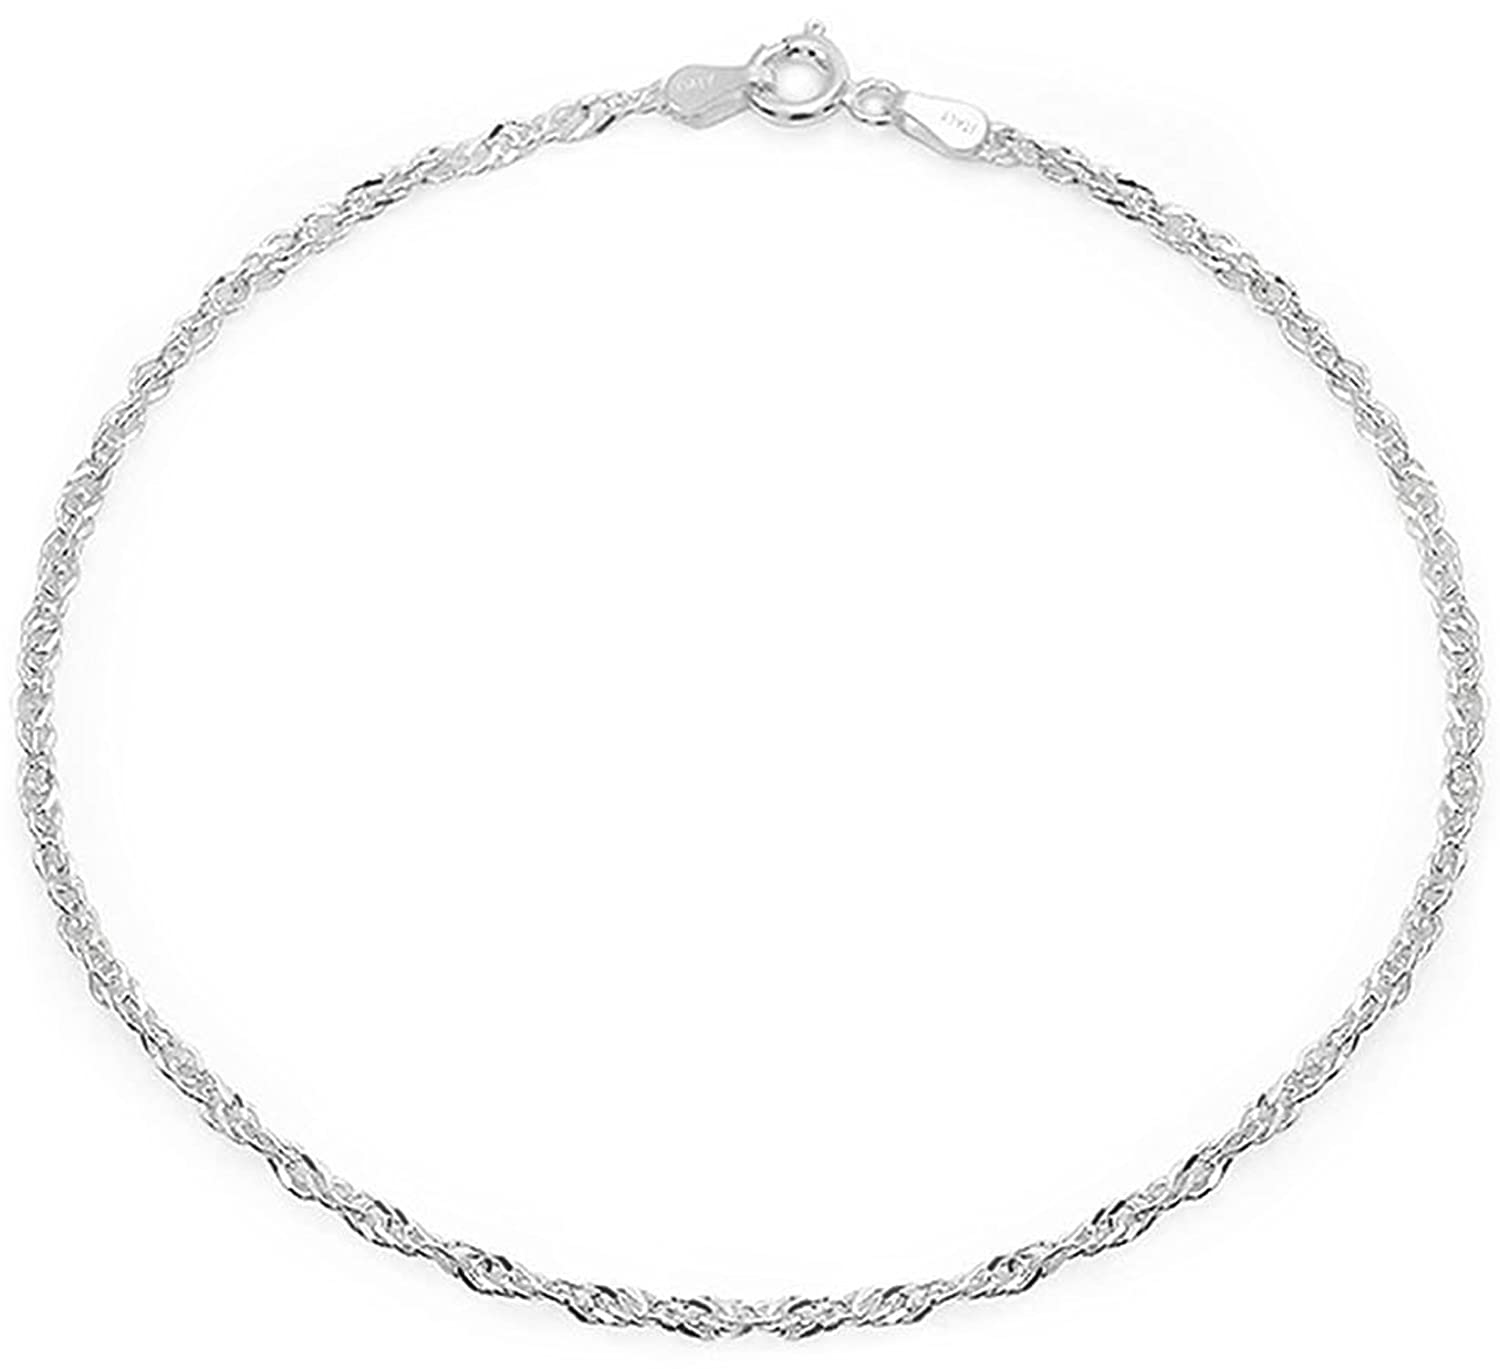 free inch inches anklet for cross safe to with silver hypoallergenic allergy charms tiny jewelry nickel simplywhispers